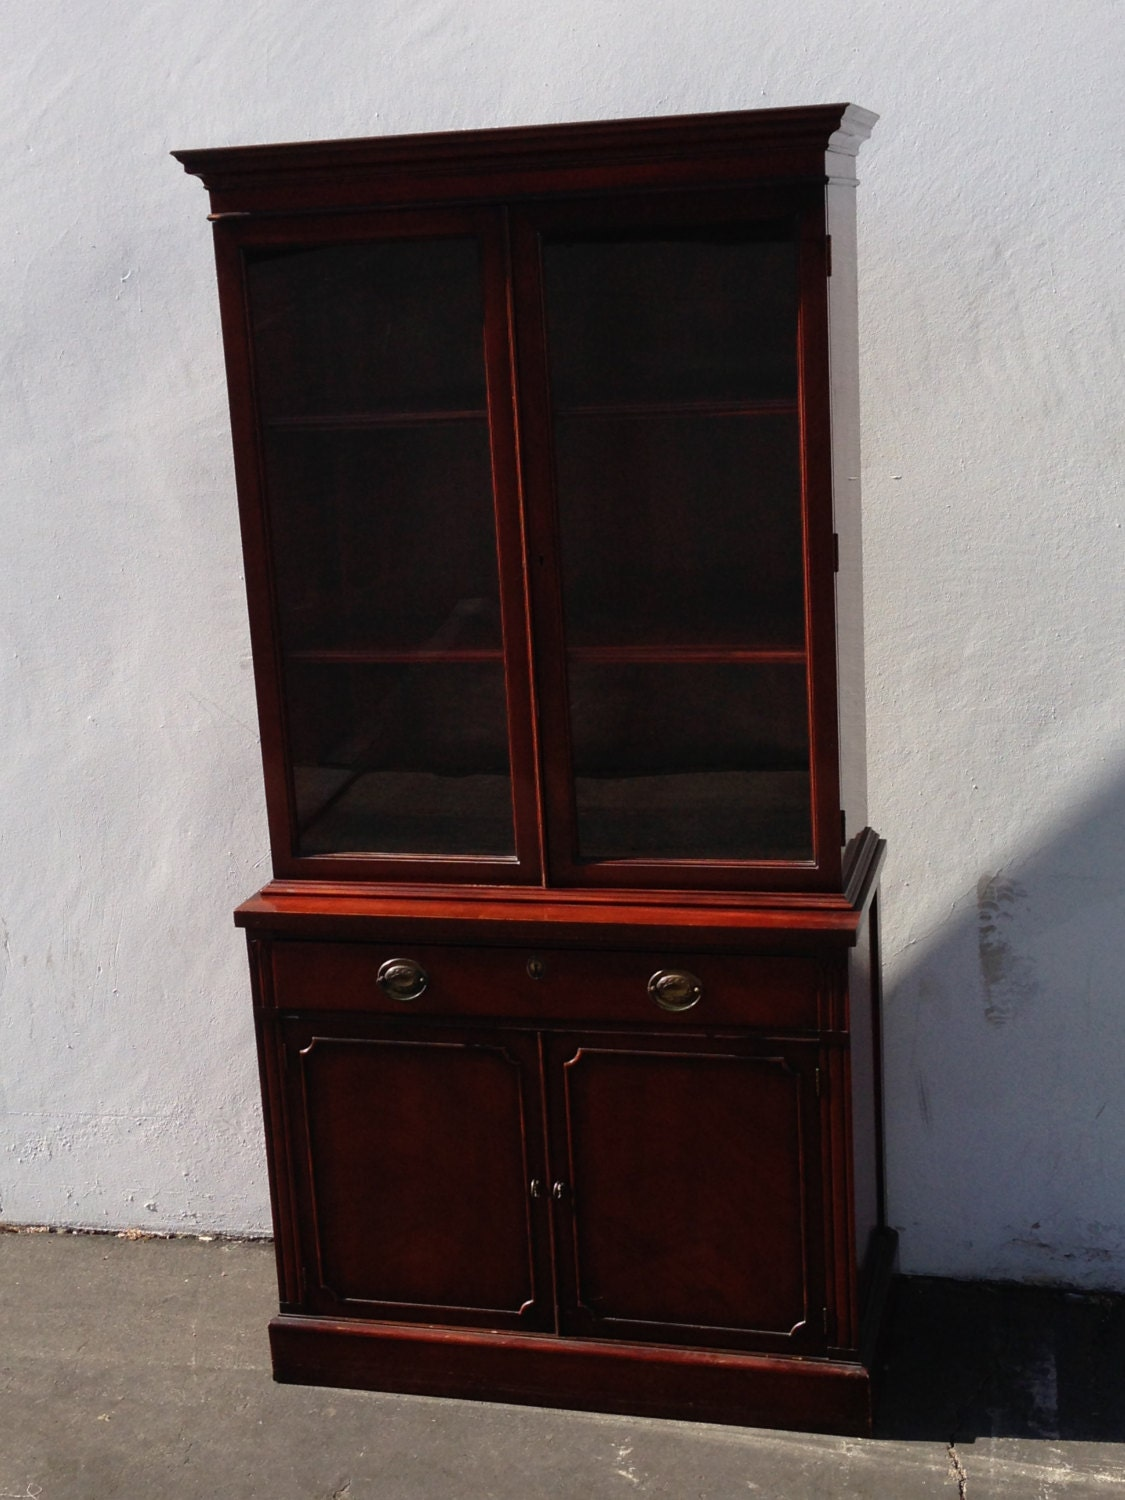 Gorgeous Vintage Drexel China Cabinet Hutch French Provincial